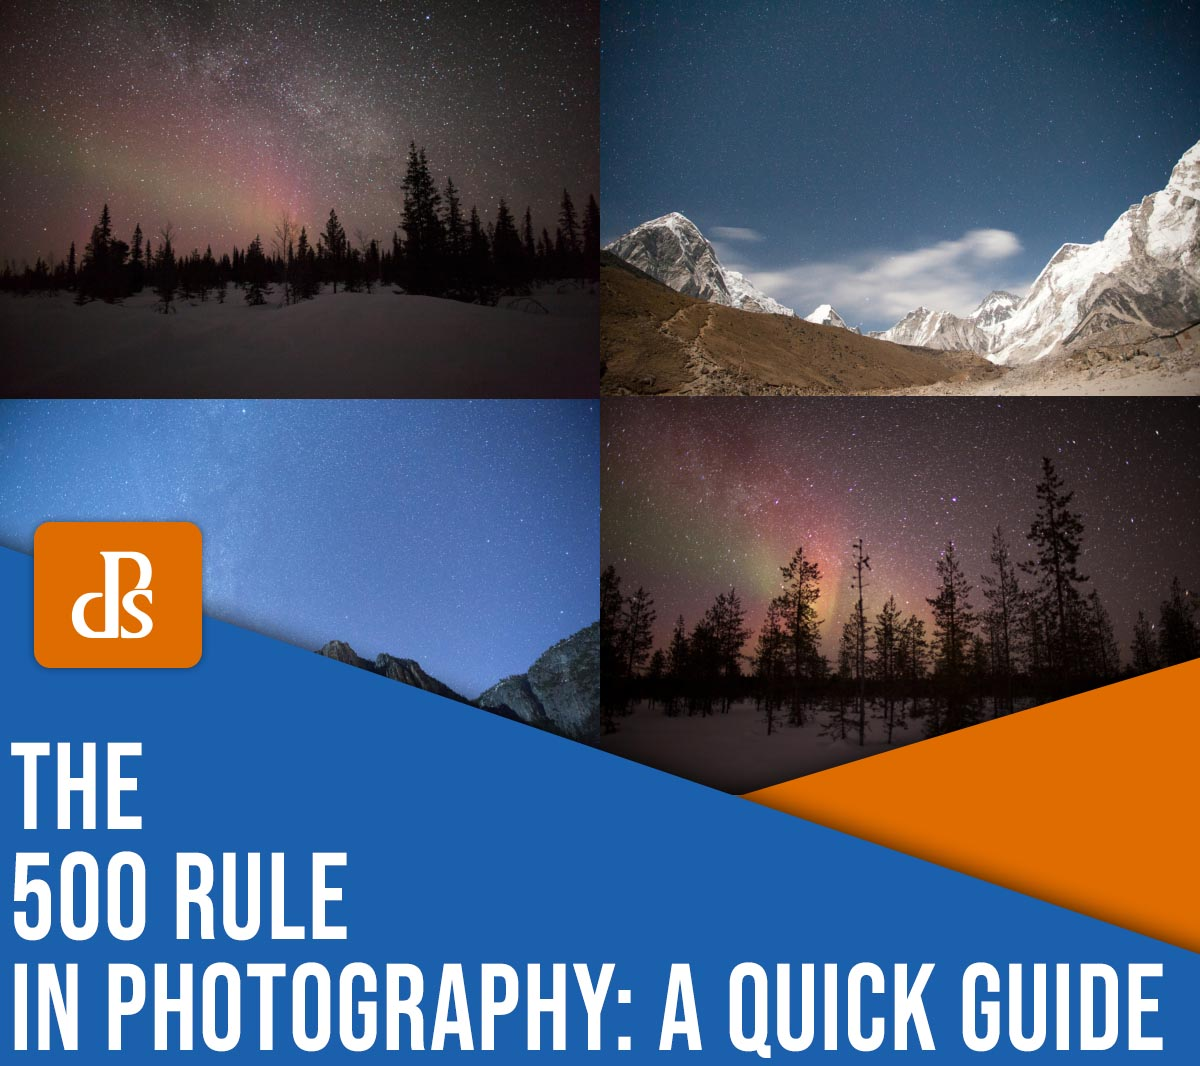 The 500 Rule in Photography: What Is It and How Does It Work?